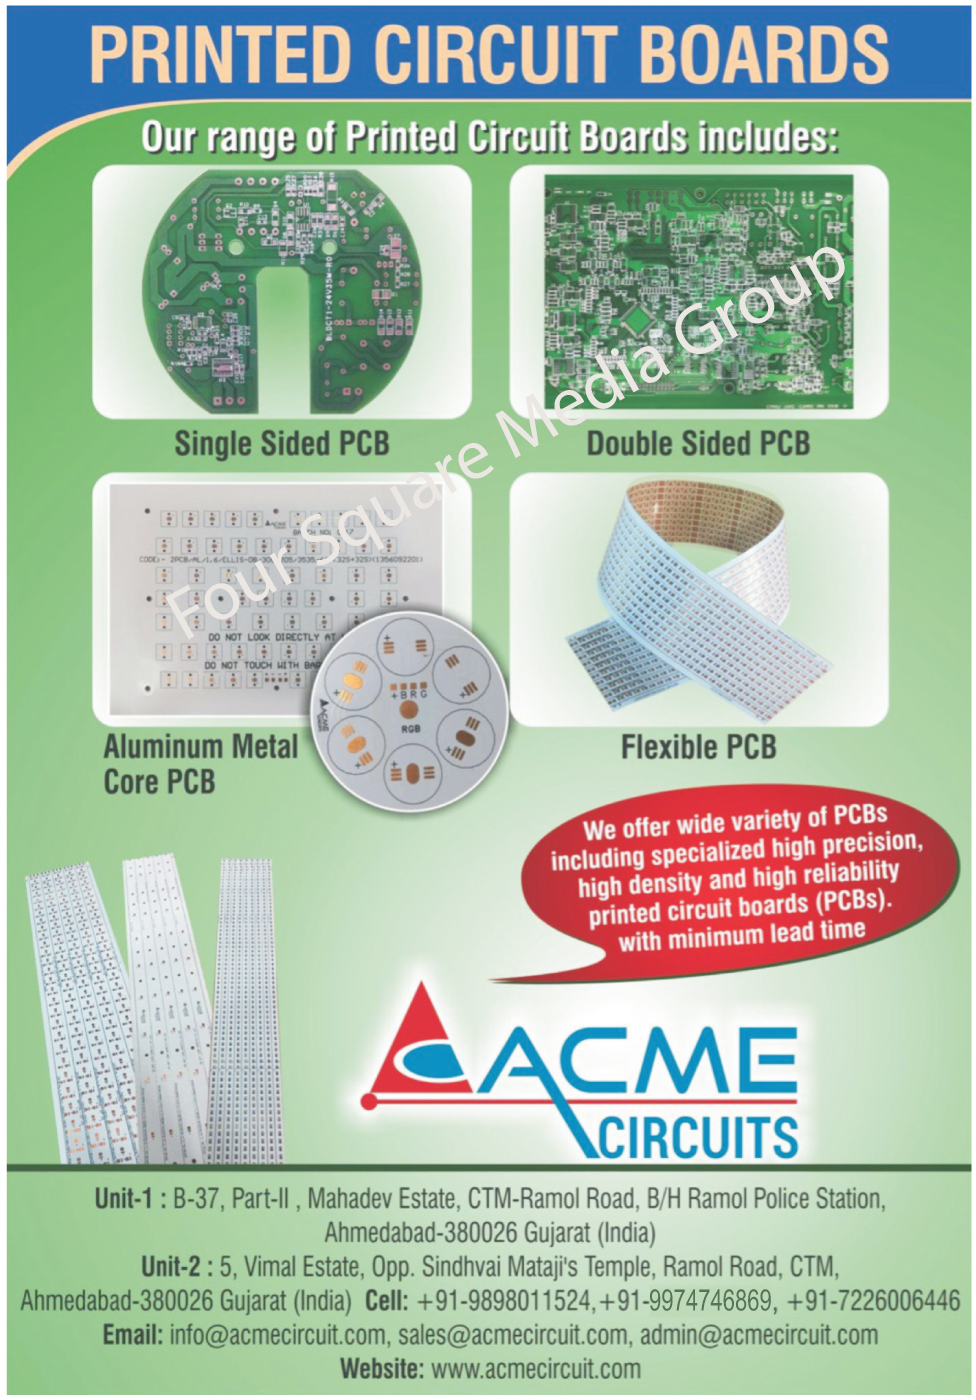 printed circuit board and acme